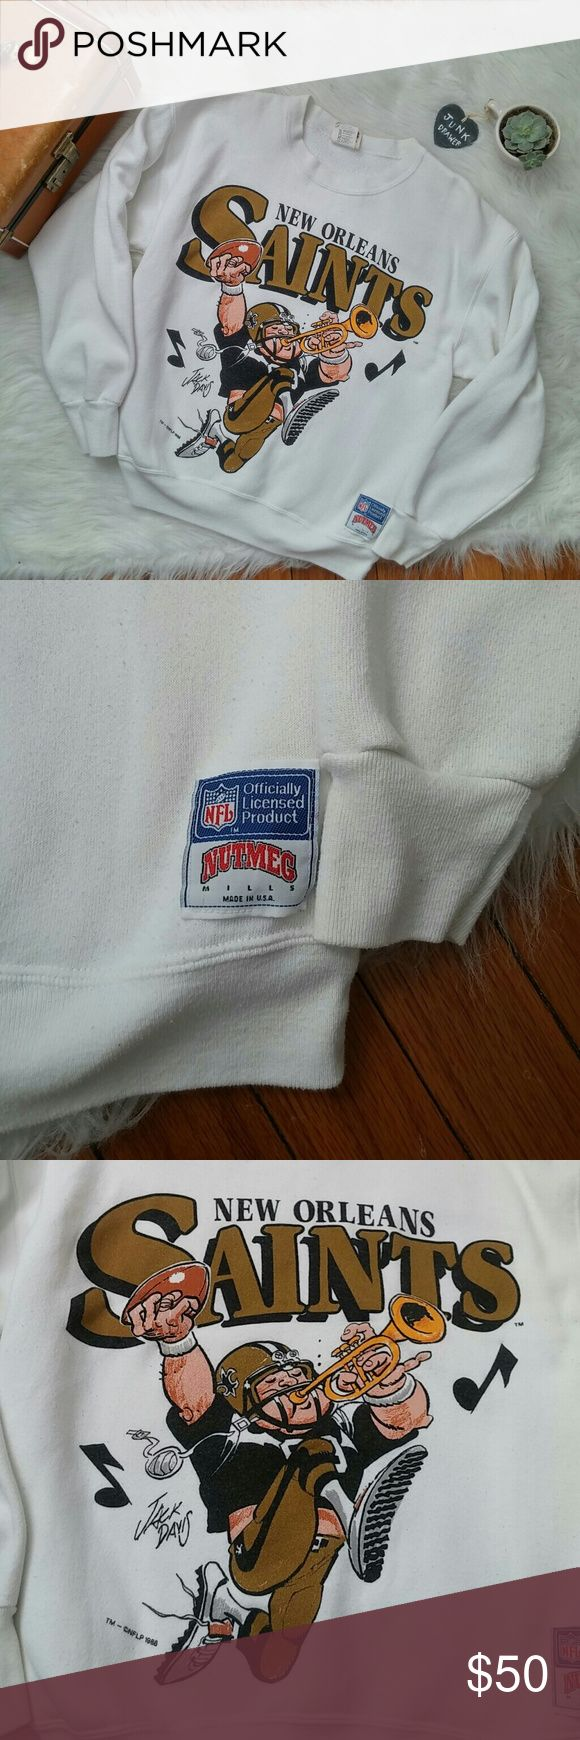 """Vintage 80s New Orleans Saints Sweatshirt Lg Worn but great vintage condition. Some pilling. Very minor unnoticeable staining pictured. Jack Davis Artwork. NFL licensed product. Nutmeg Mills. Made in USA. Cotton/polyester. Bust 22"""". Length 24.5"""".  BUNDLE your likes and shoot me and OFFER! Glad to negotiate. Hundreds of items available for discounted bundle offers!  Follow on IG: @the.junk.drawer Vintage Tops Sweatshirts & Hoodies"""